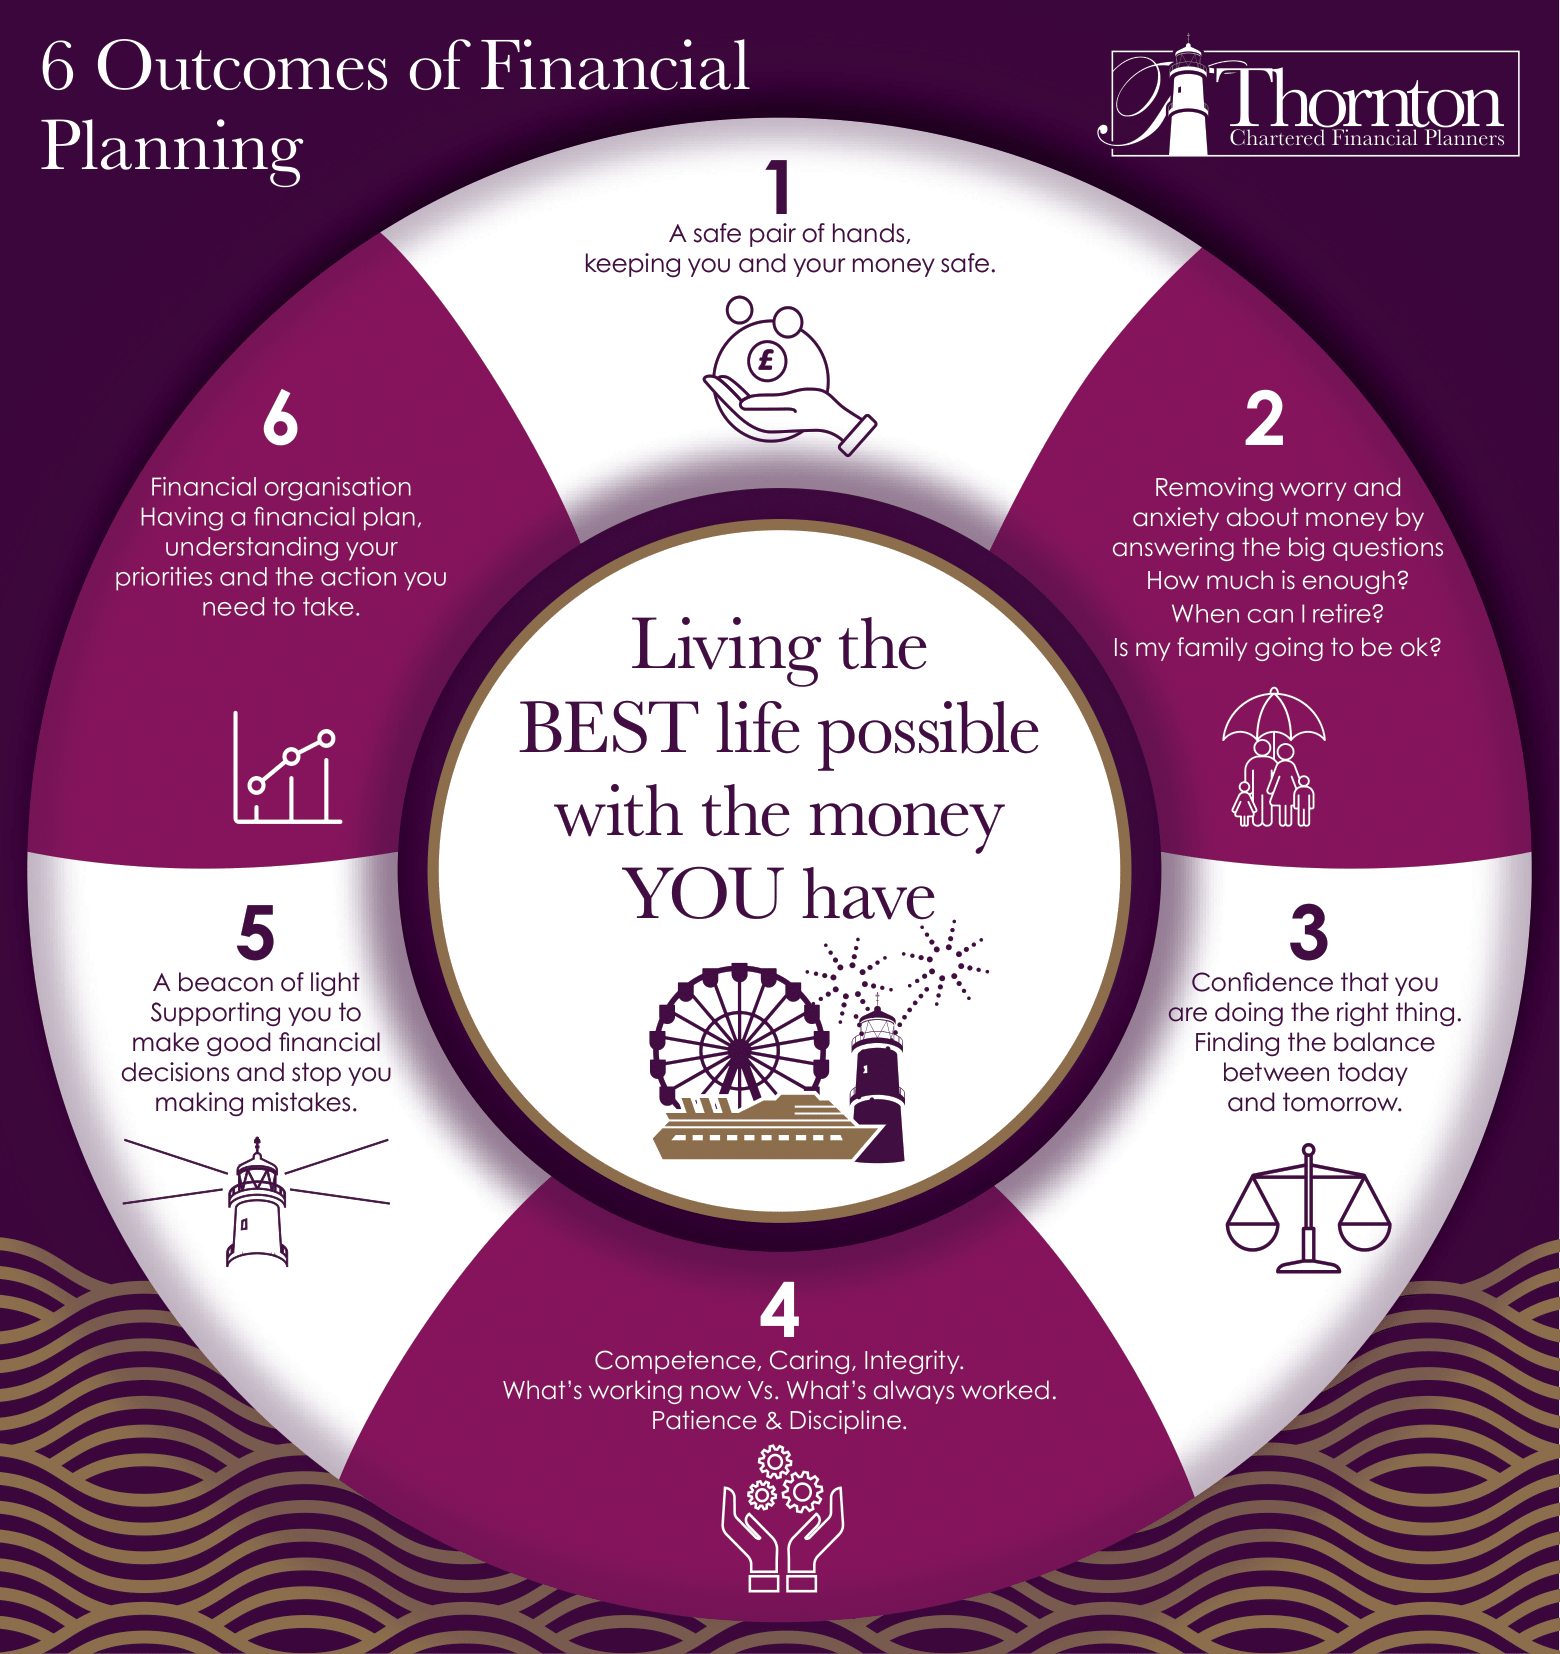 6 Outcomes of Financial Planning